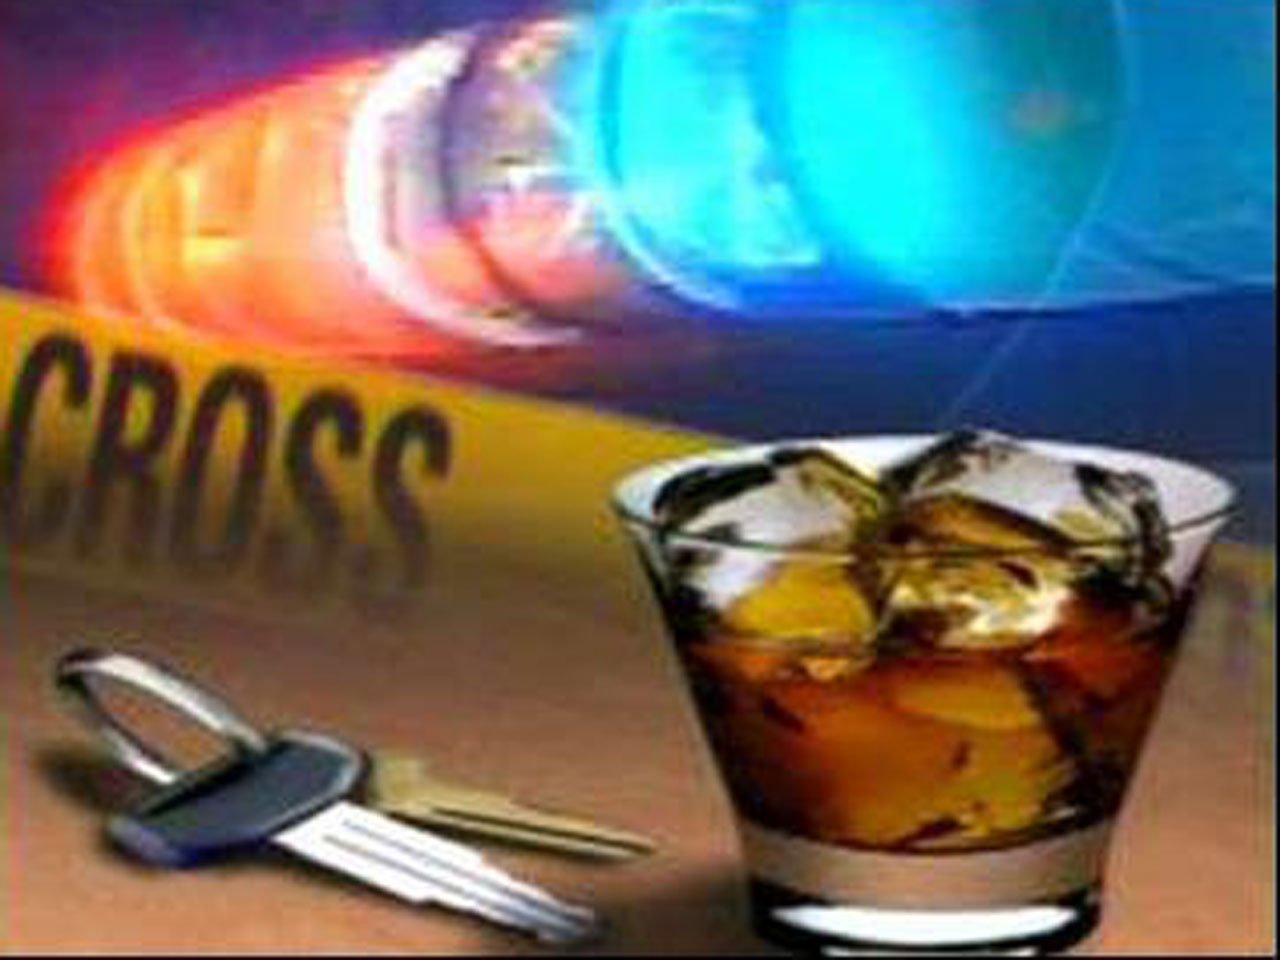 Newark woman charged with DWI in Ontario County